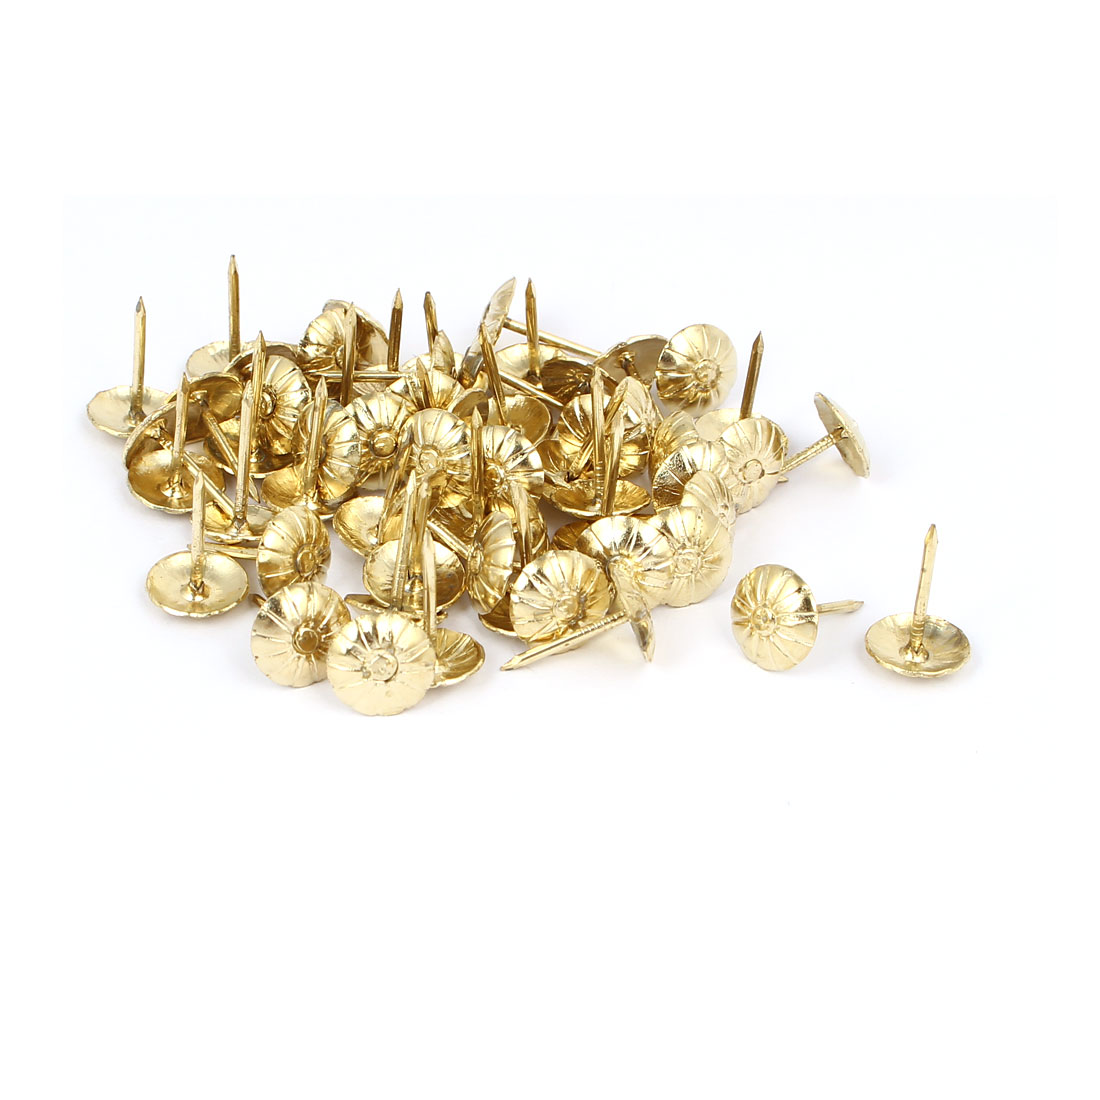 "7/16"" Dia Daisy Upholstery Nail Decorative Tack Stud Push Pin Thumbtack 60PCS"